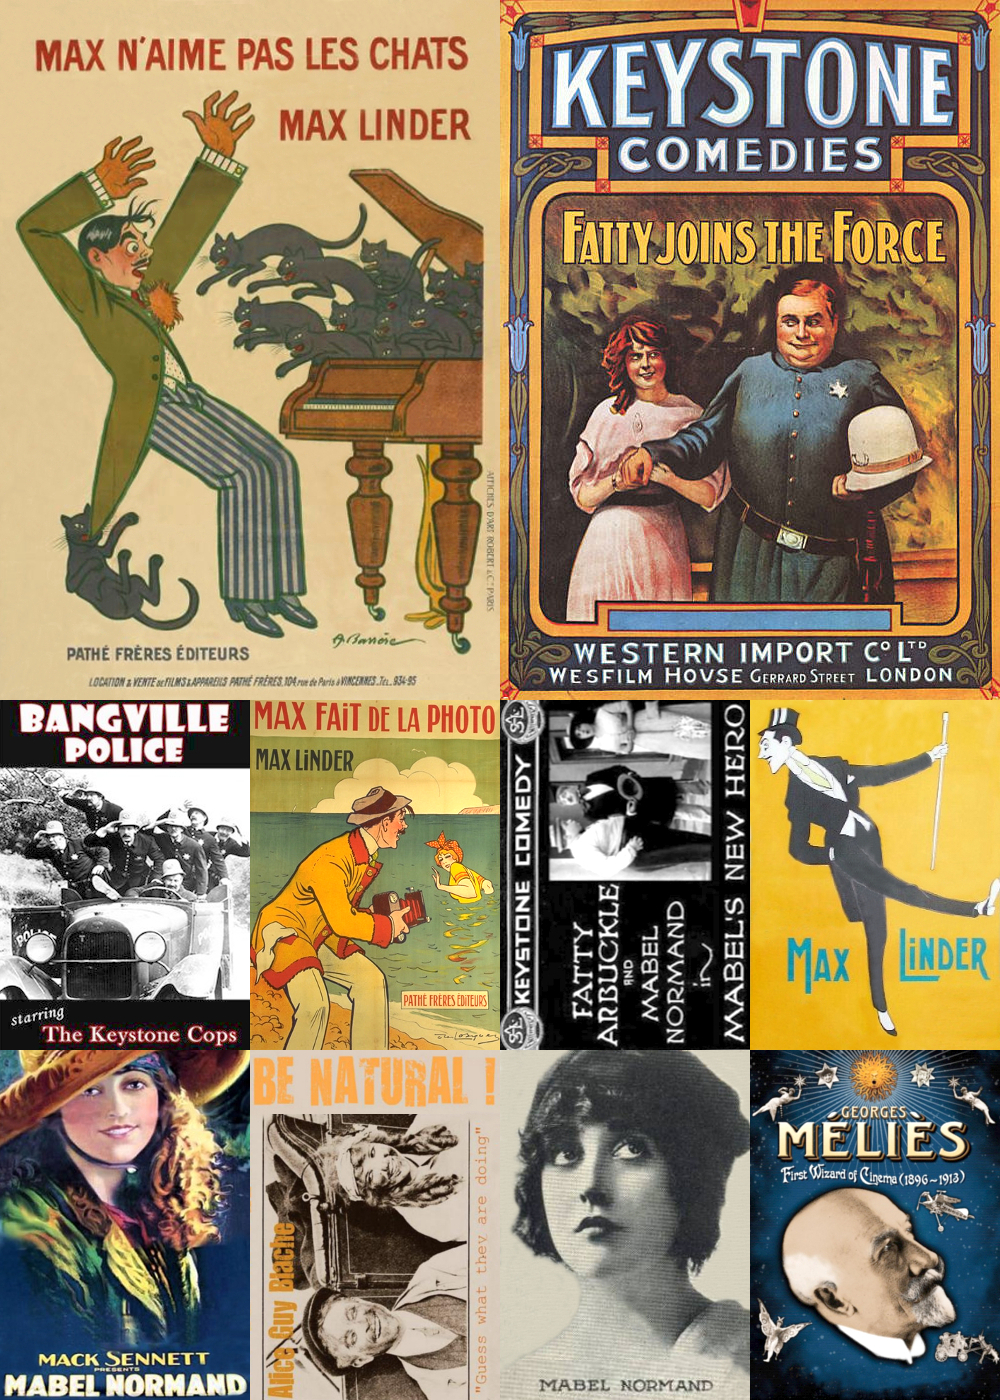 Top 10 Comedy Movies 1913